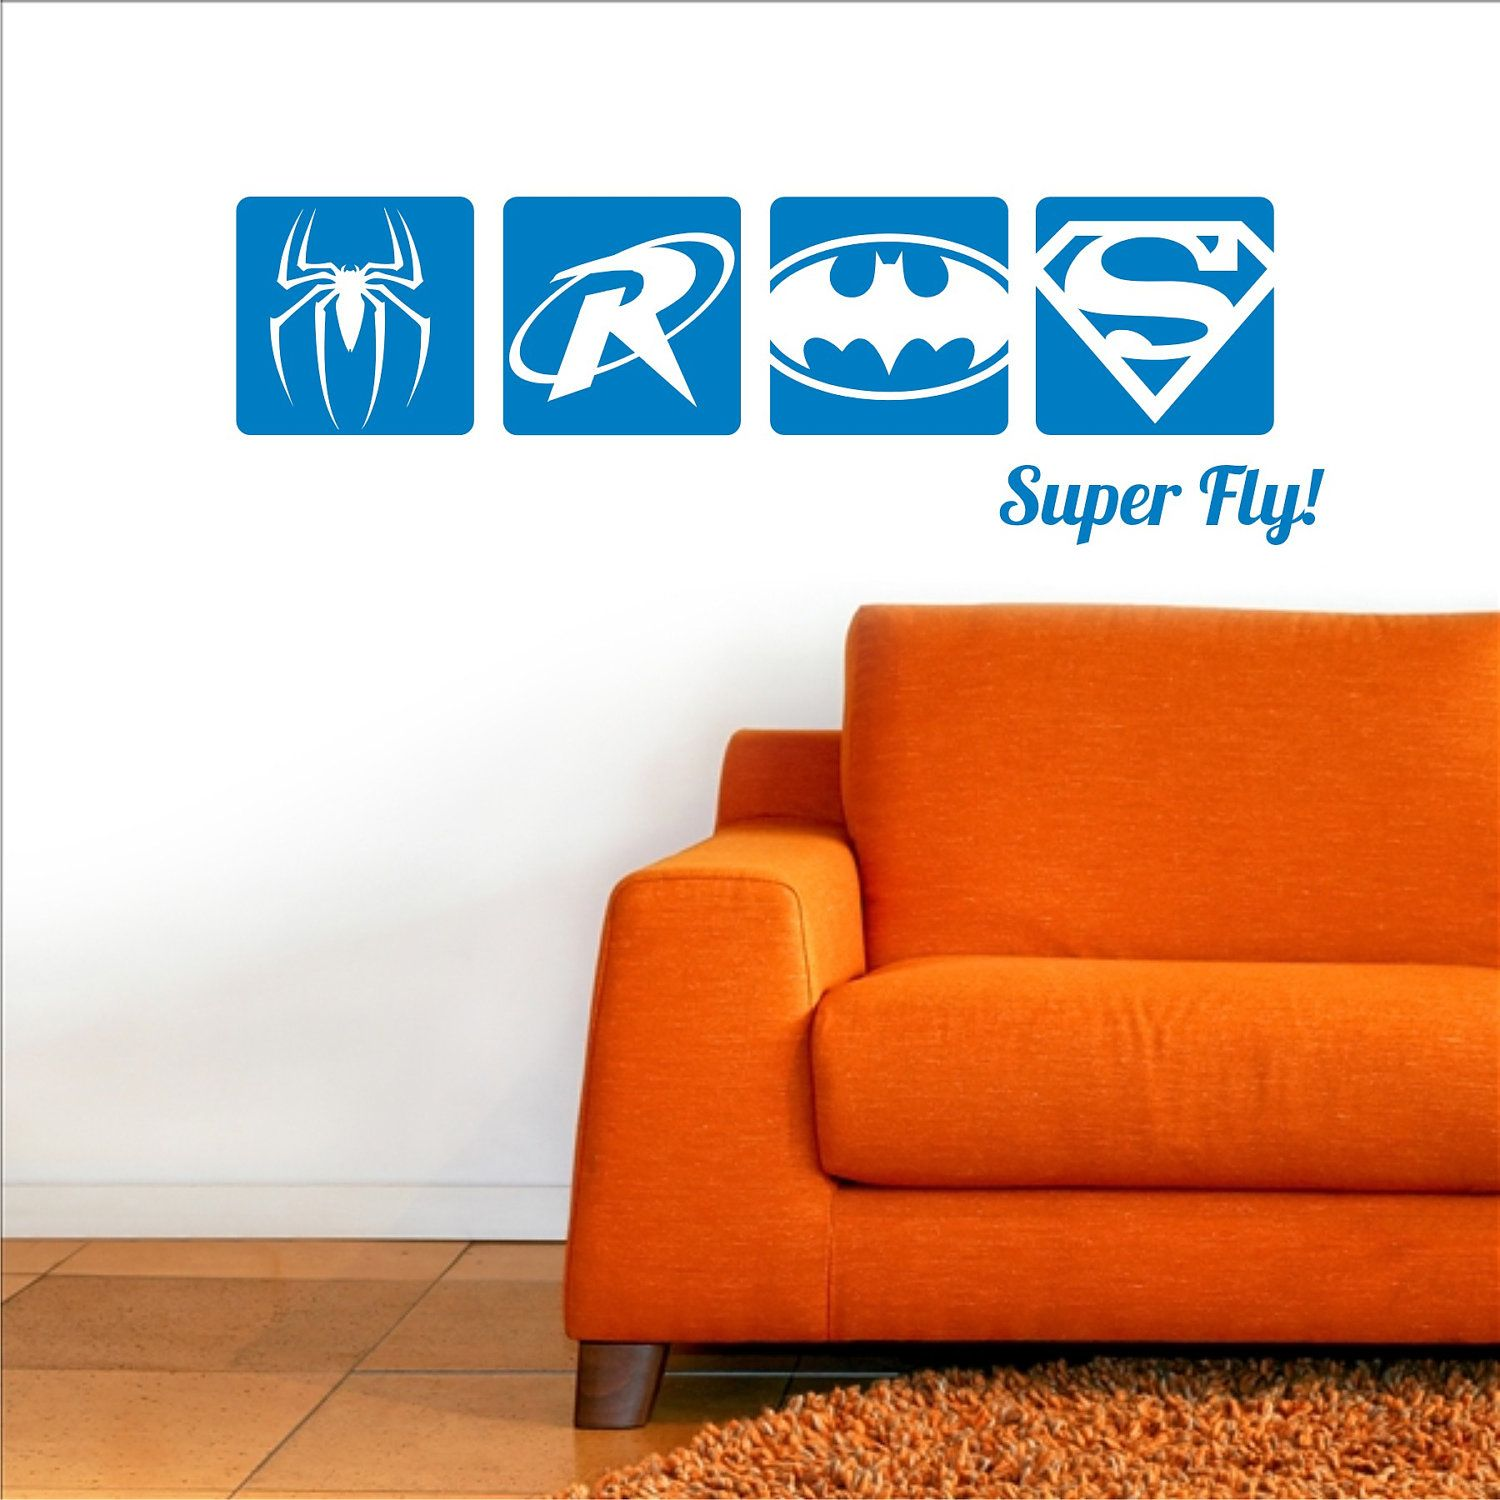 SUPERHERO Wall Decal Spiderman Robin Green Lantern Flash - Superhero wall decals for kids roomssuperhero wall decal etsy